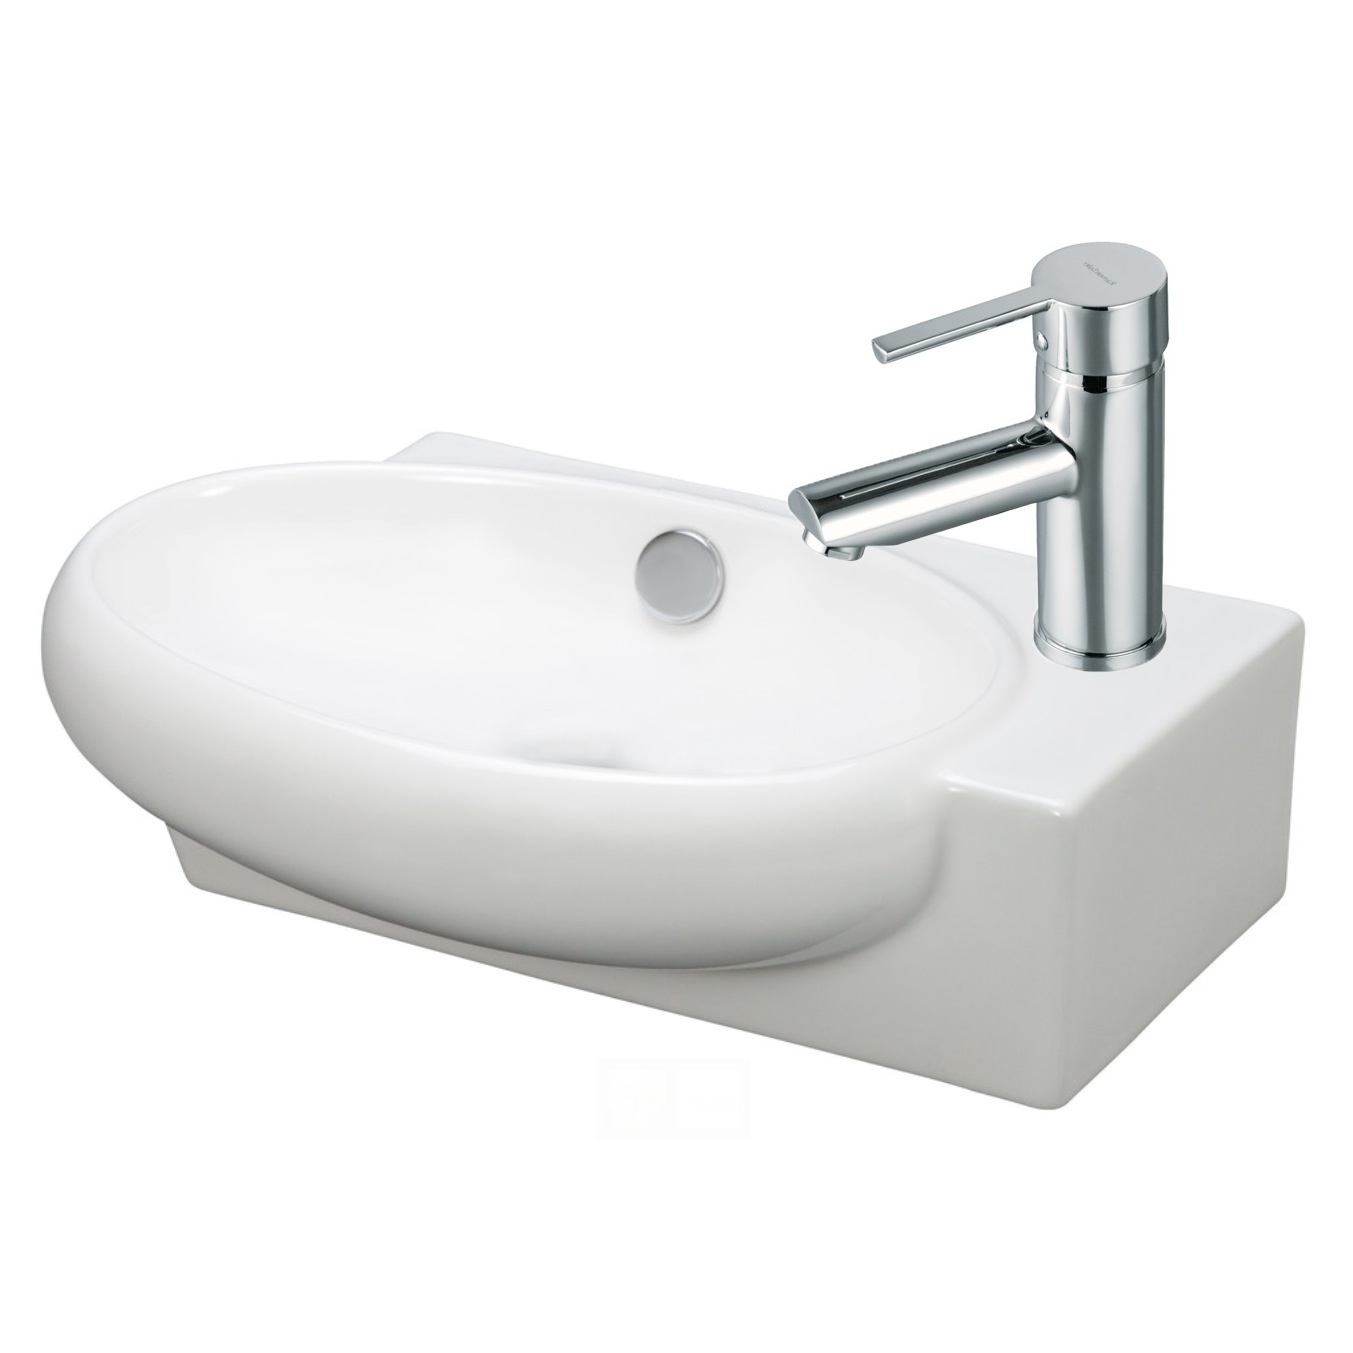 ... FAU504, Contemporary Ceramic Bathroom Sink and Faucet Combo FAU504